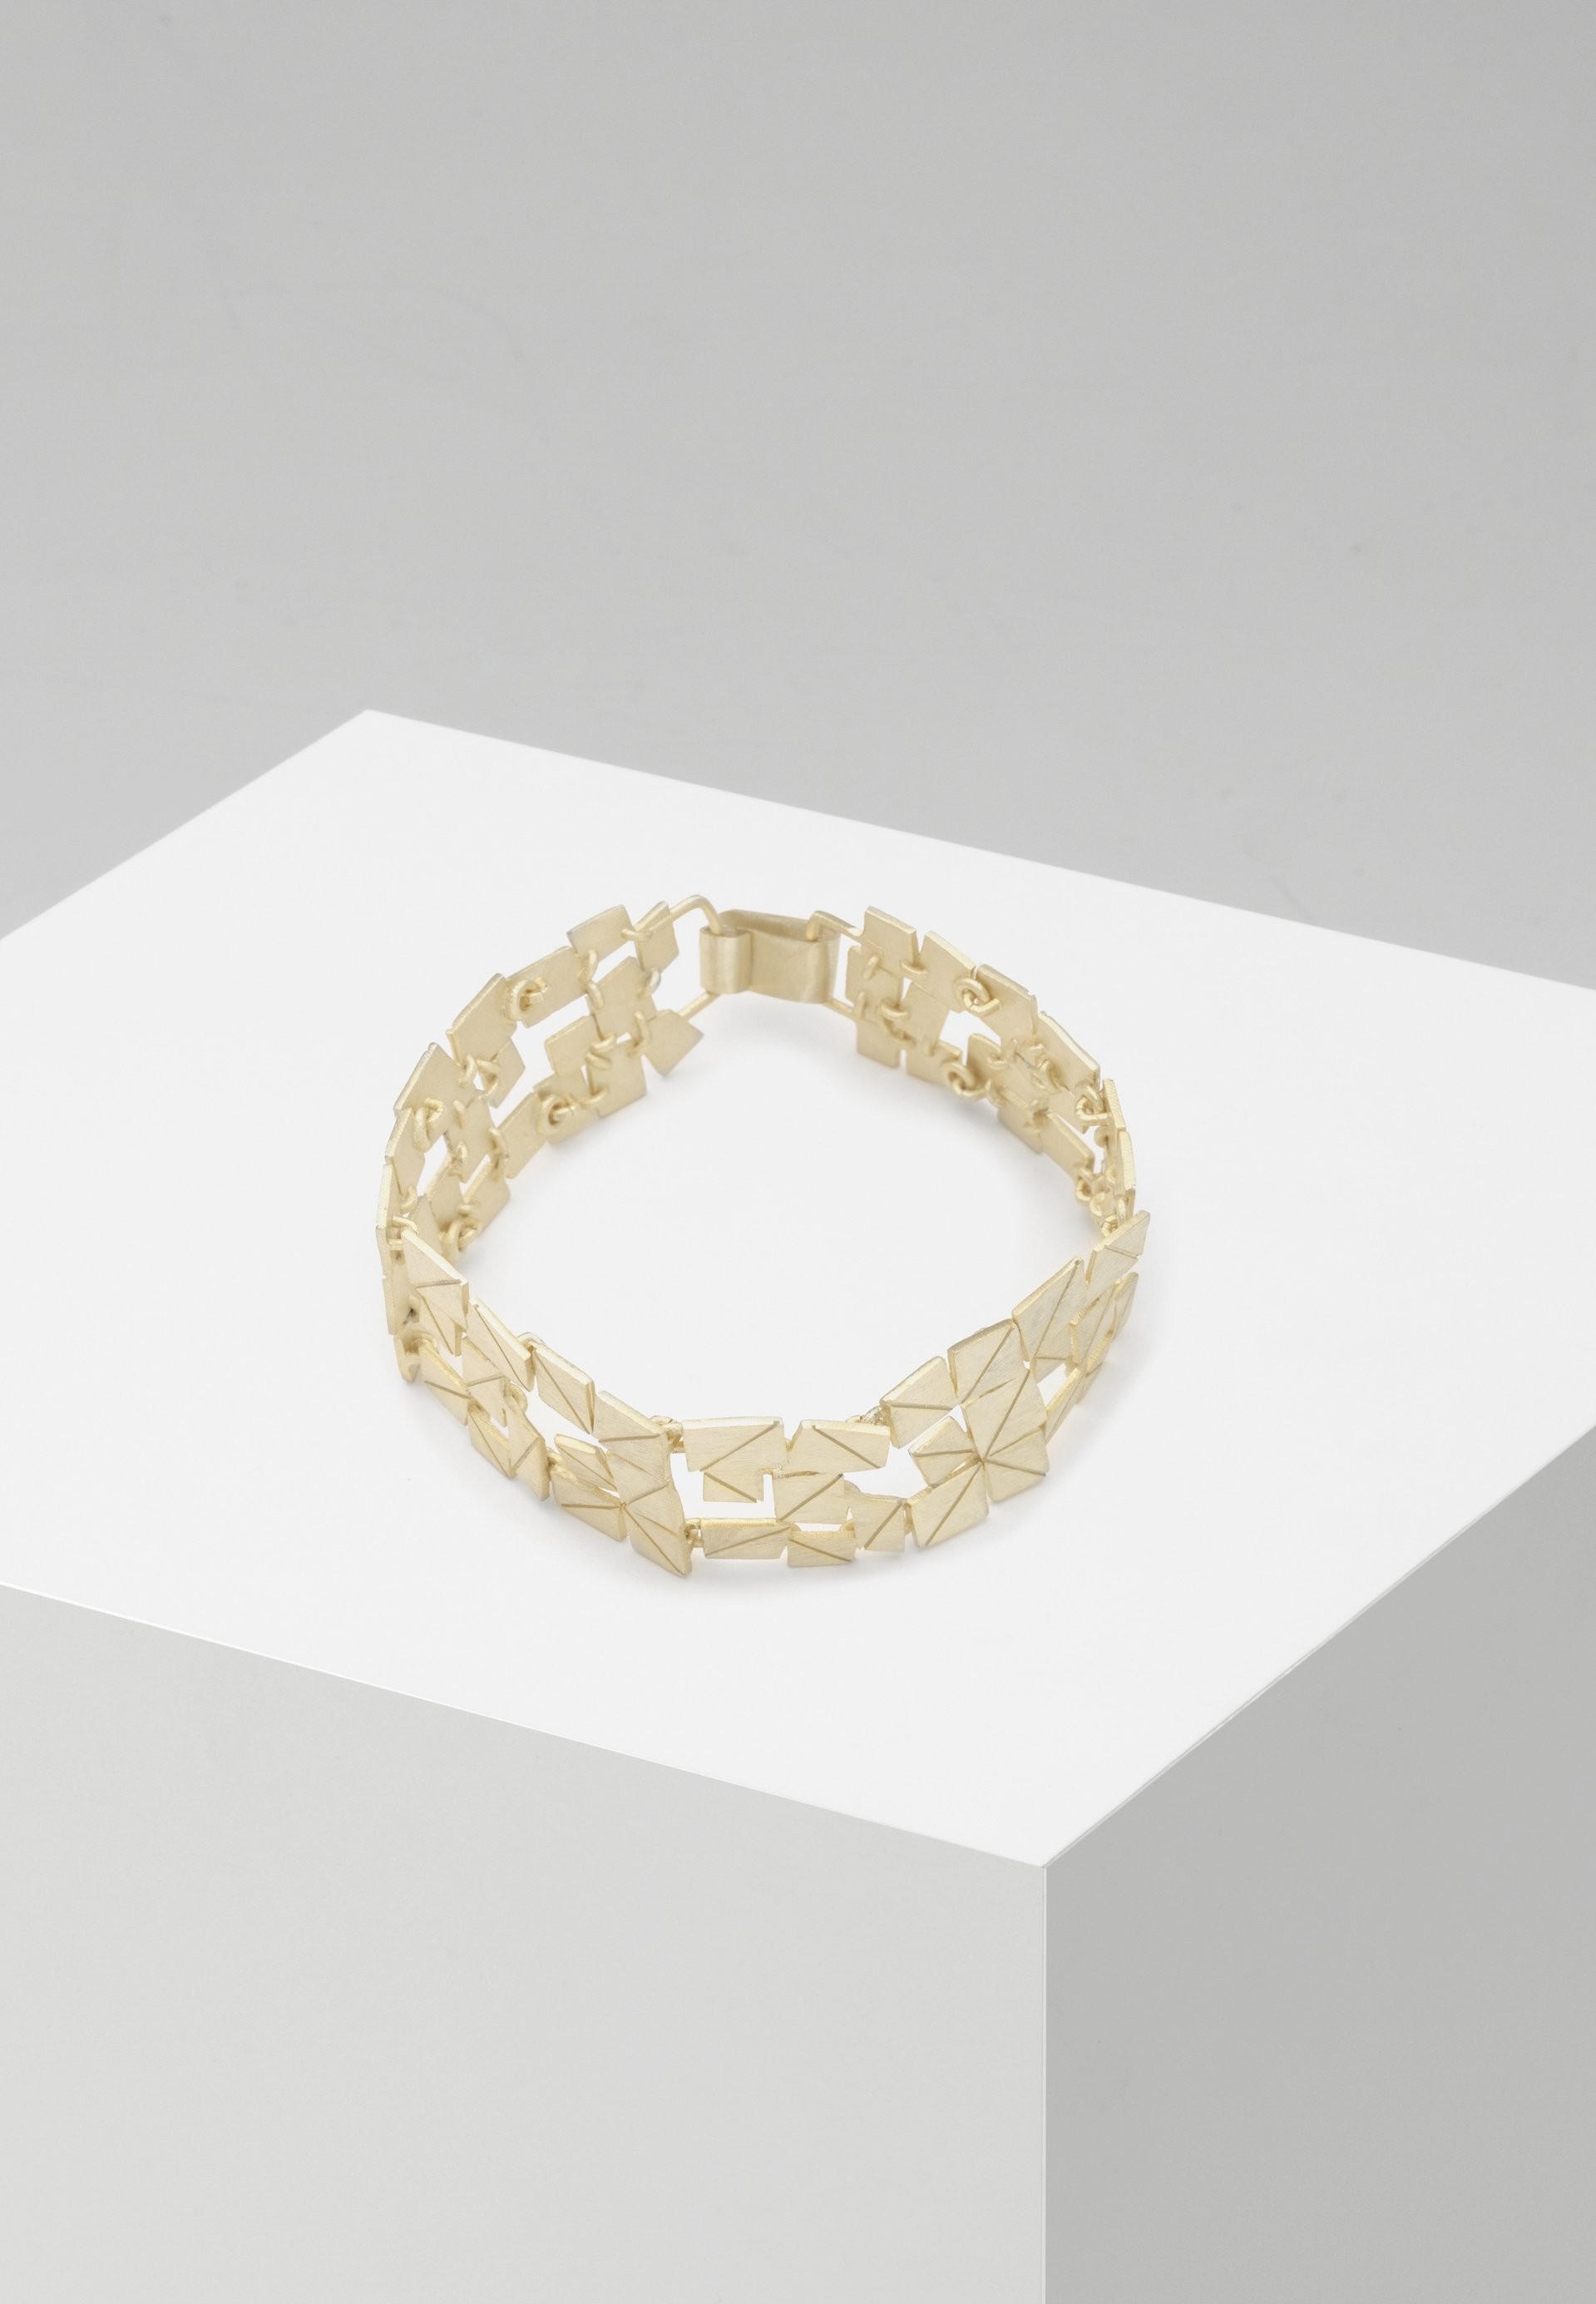 Factory Price Get The Latest Fashion Accessories Heideman PARTIS Bracelet gold-coloured ZF82I2DFU dB7y5z3xM